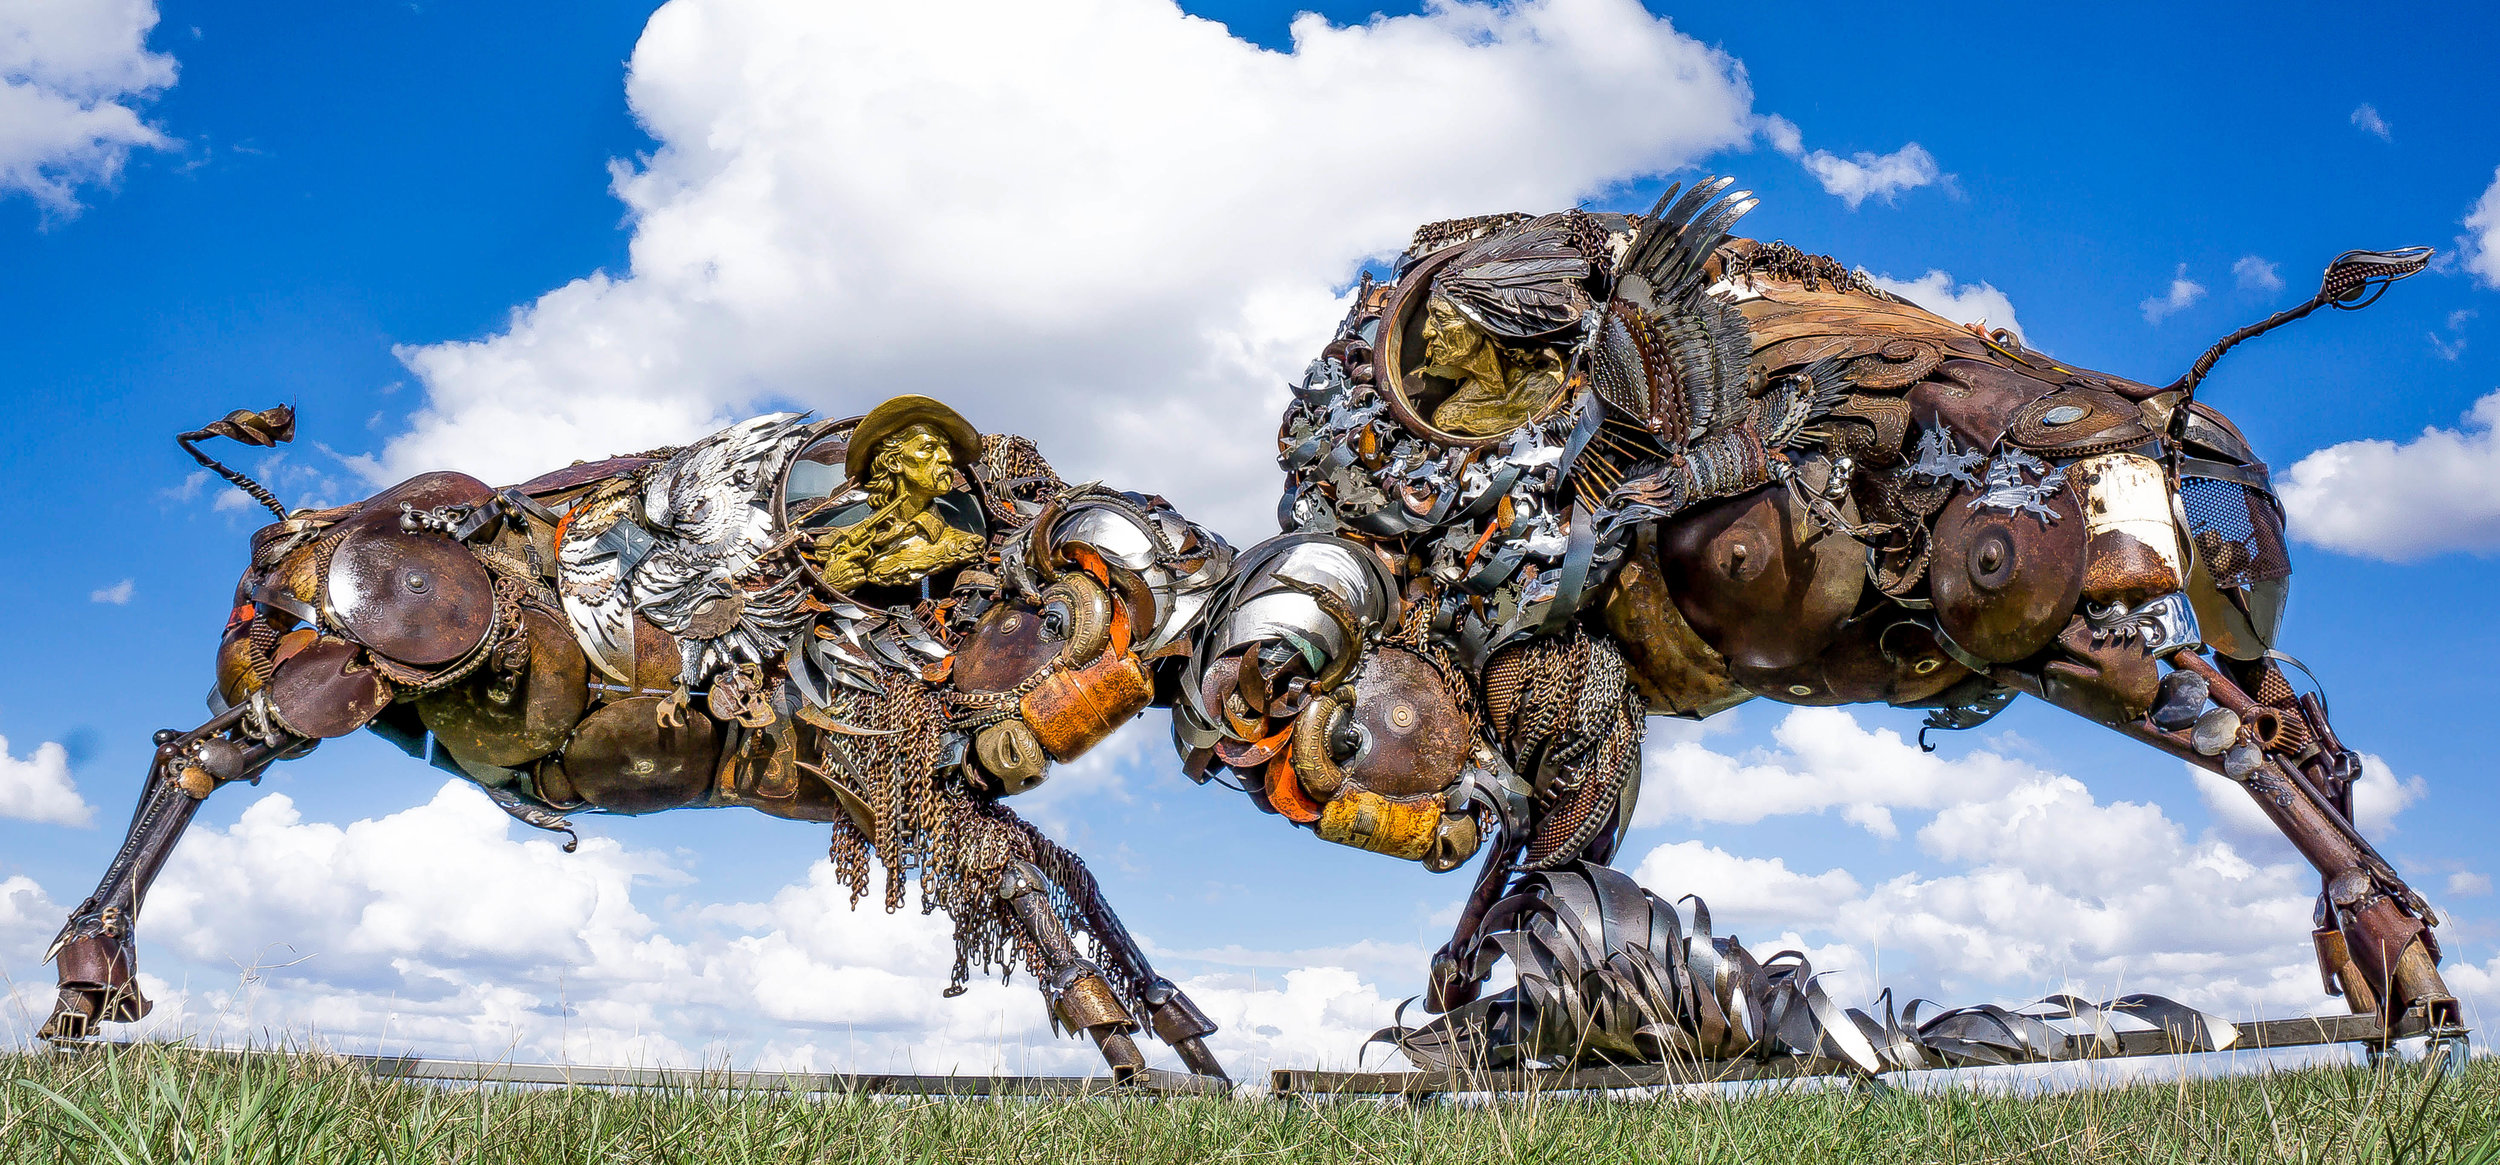 Sculptor Turns Old Scrap Metal and Farm Equipment Into Stunning Sculptures